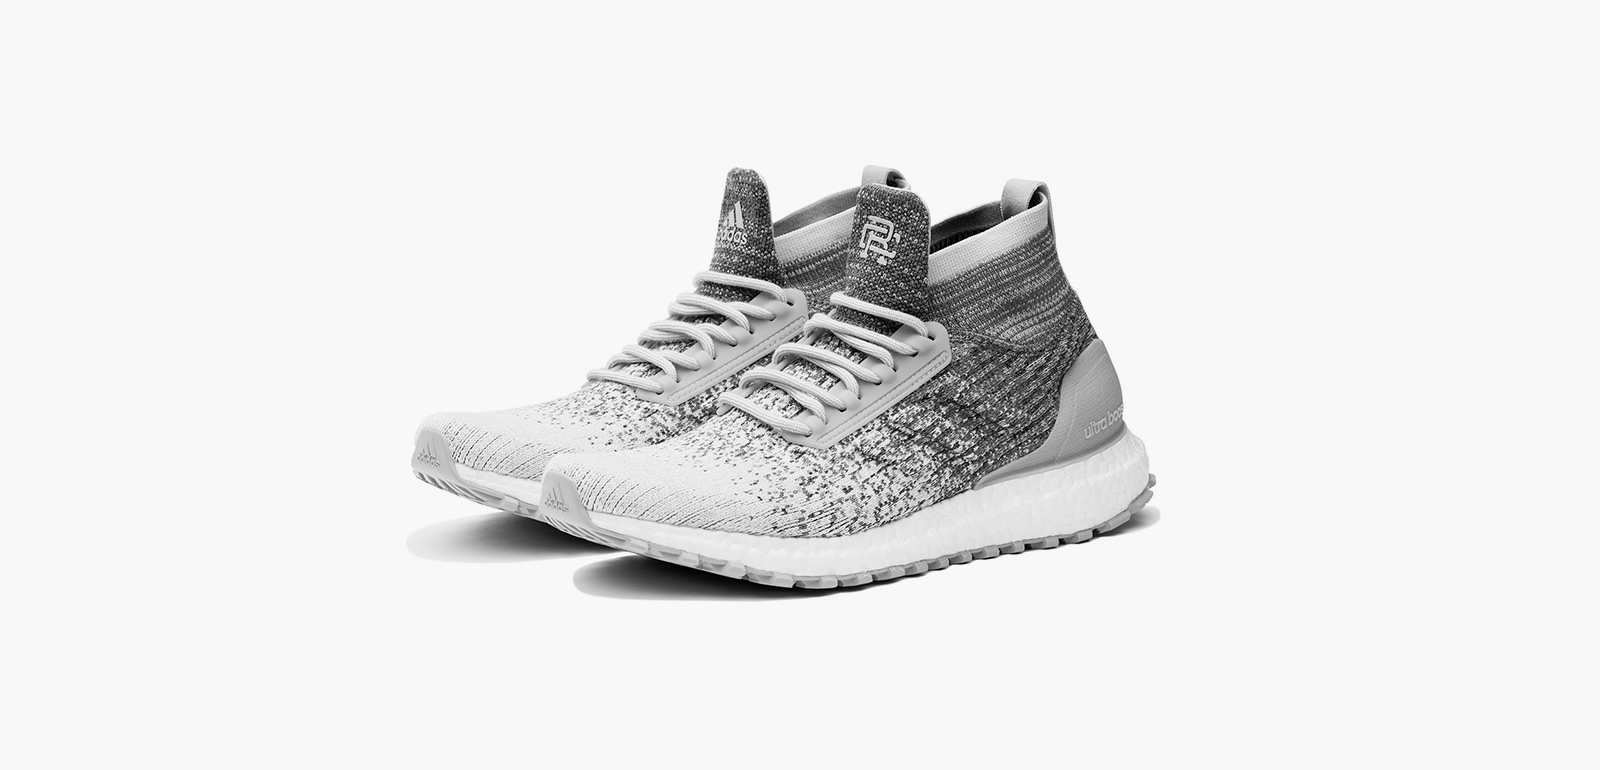 a2d19a363d0 Adidas X Reigning Champ Ultra Boost All Terrain - IMBOLDN